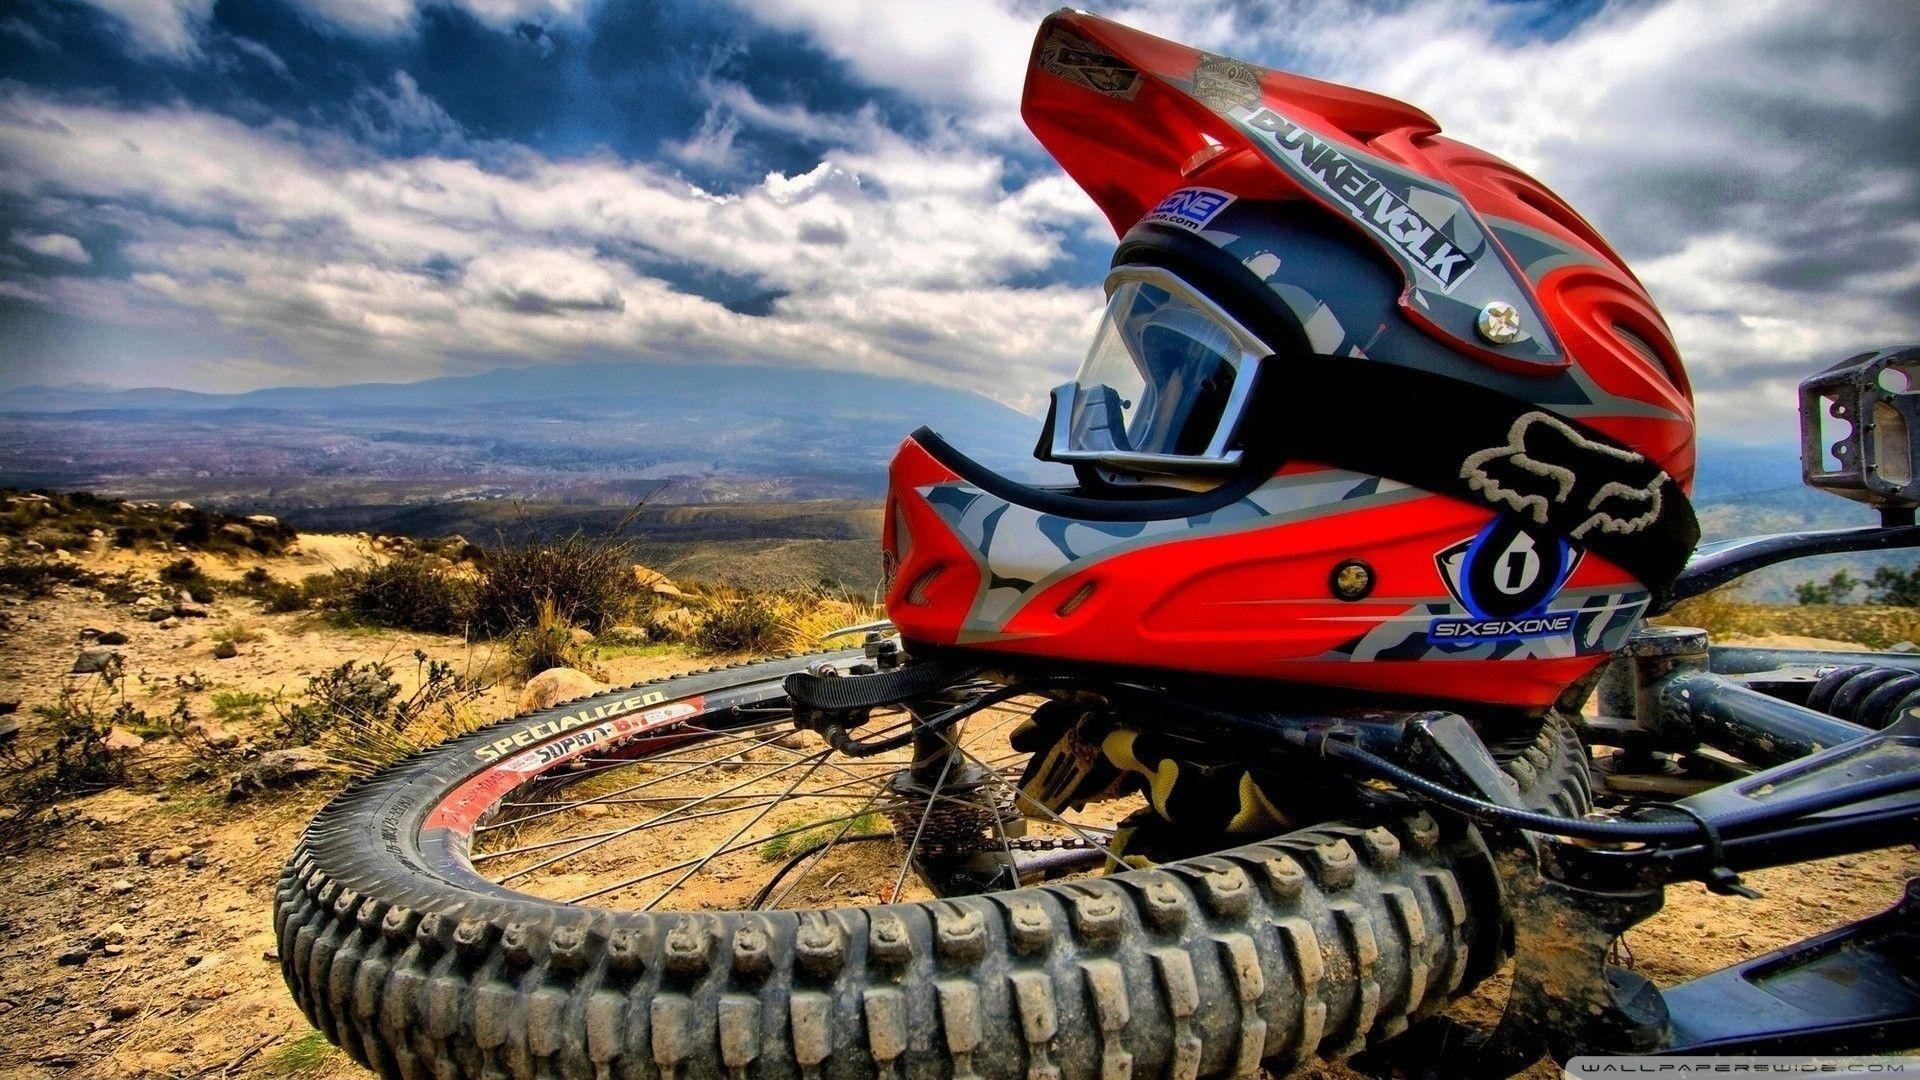 Motocross Wallpapers 2015 1920x1080